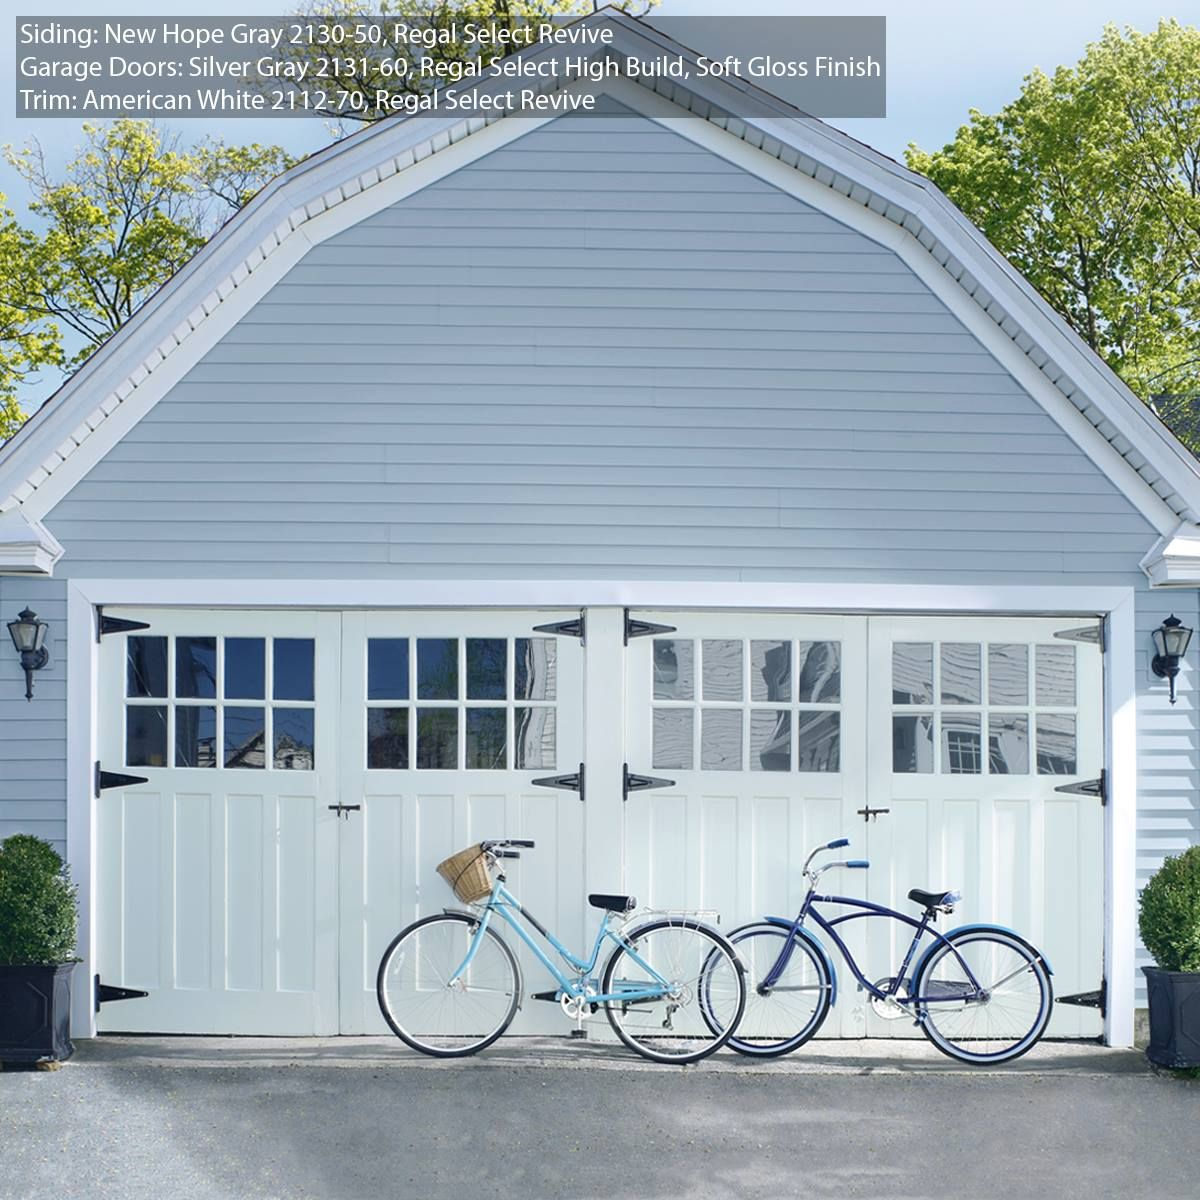 Exterior Home Color Ideas: Regal Select Revive By Benjamin Moore Is Designed